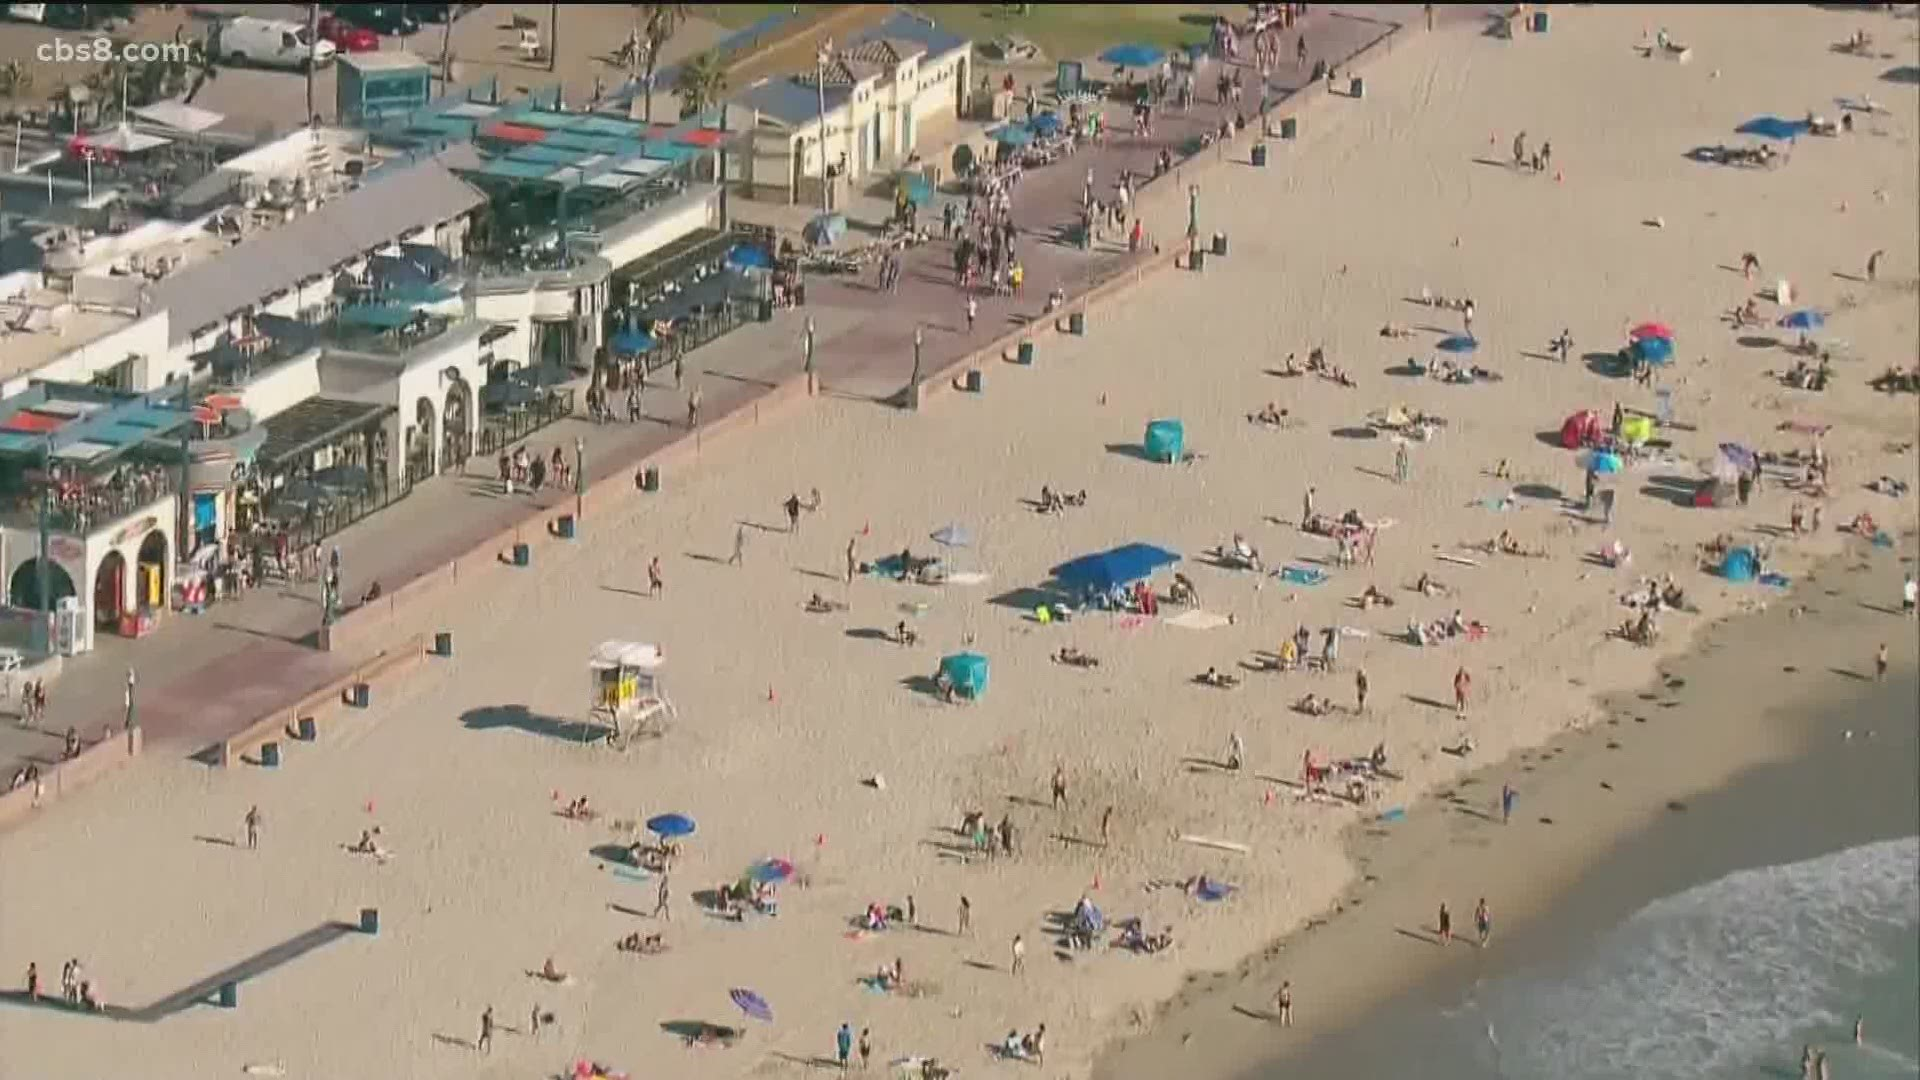 Are San Diego Beaches Going To Be Crowded Due To Covid 19 Cbs8 Com